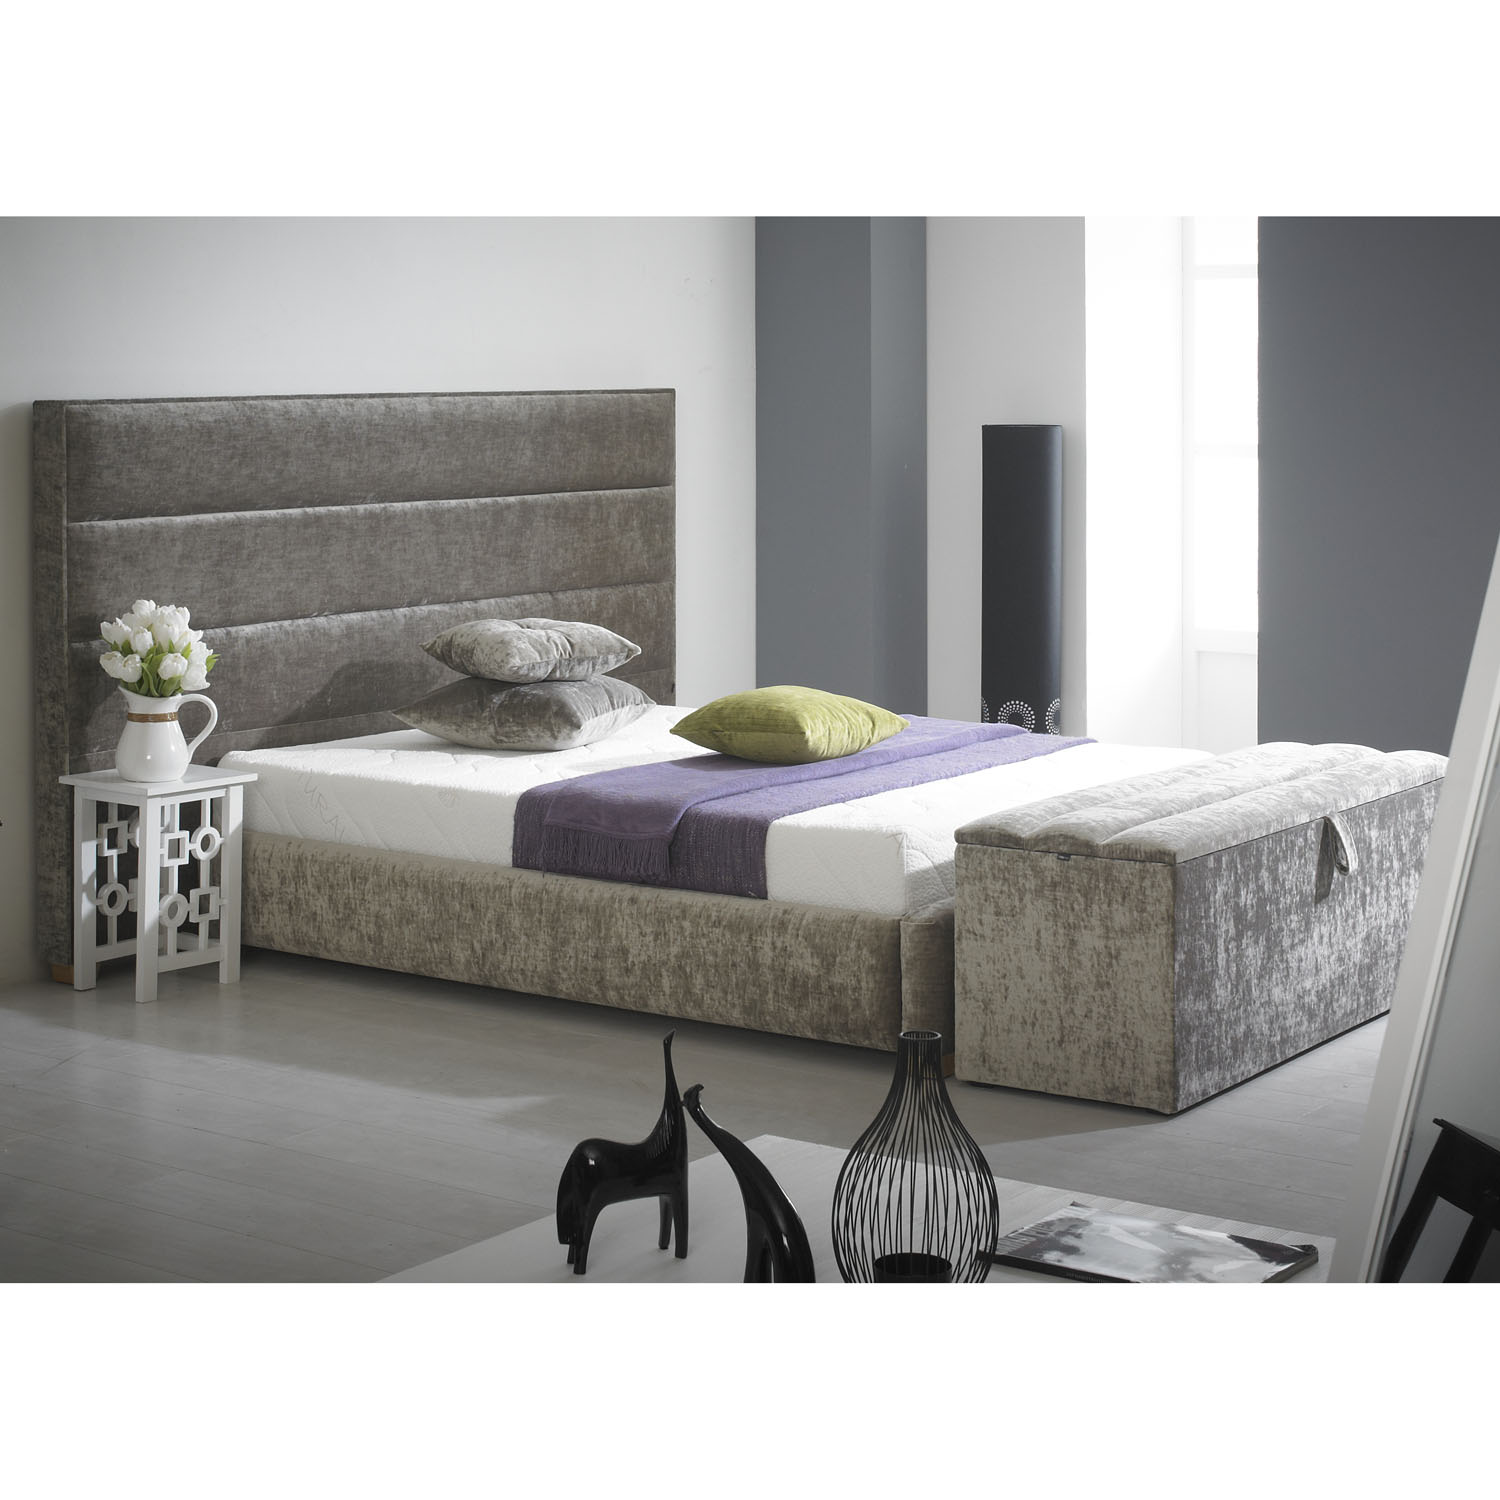 Image of: Flat Upholstered Bed Frame